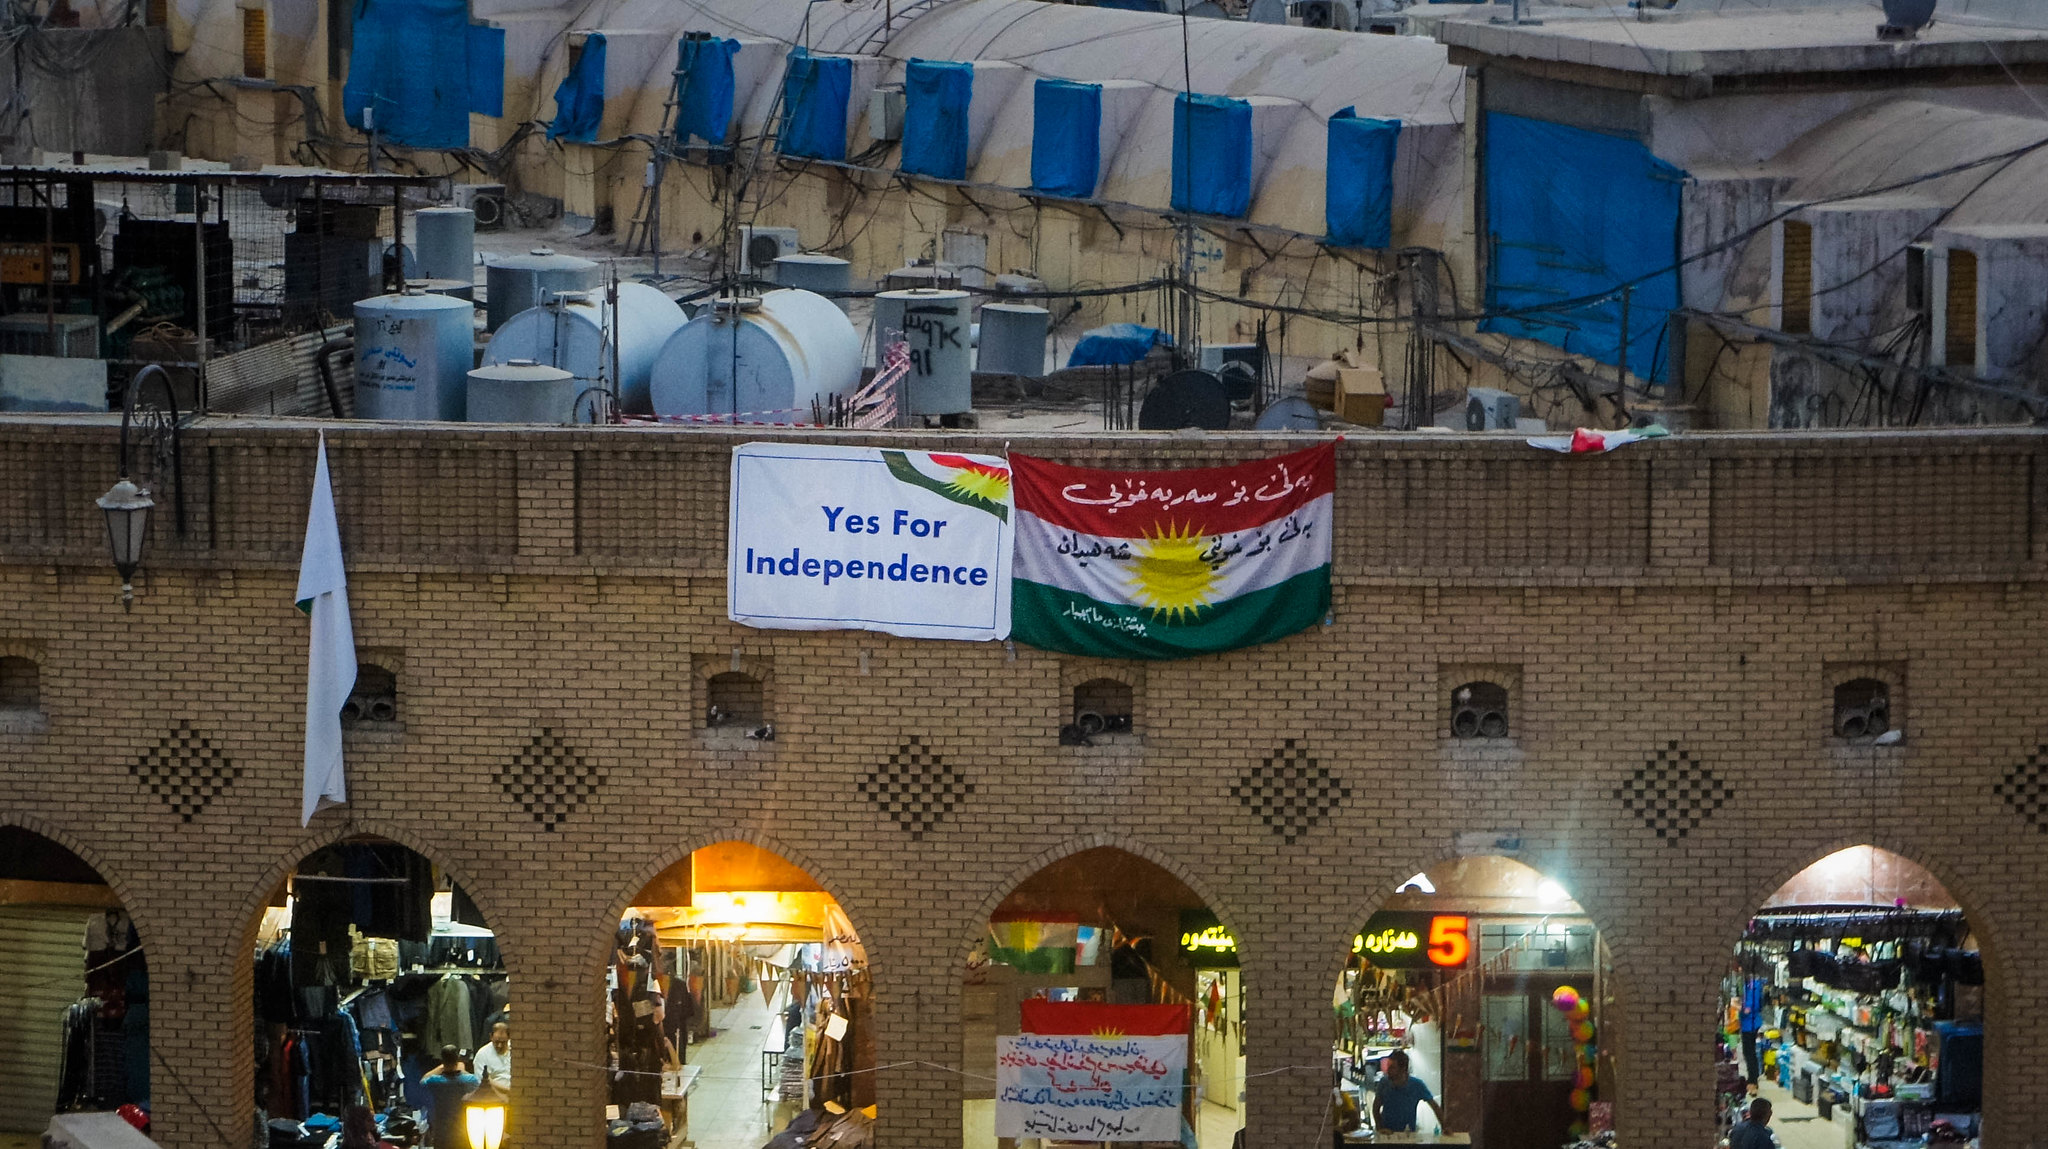 Banner for independence outside the bazaar